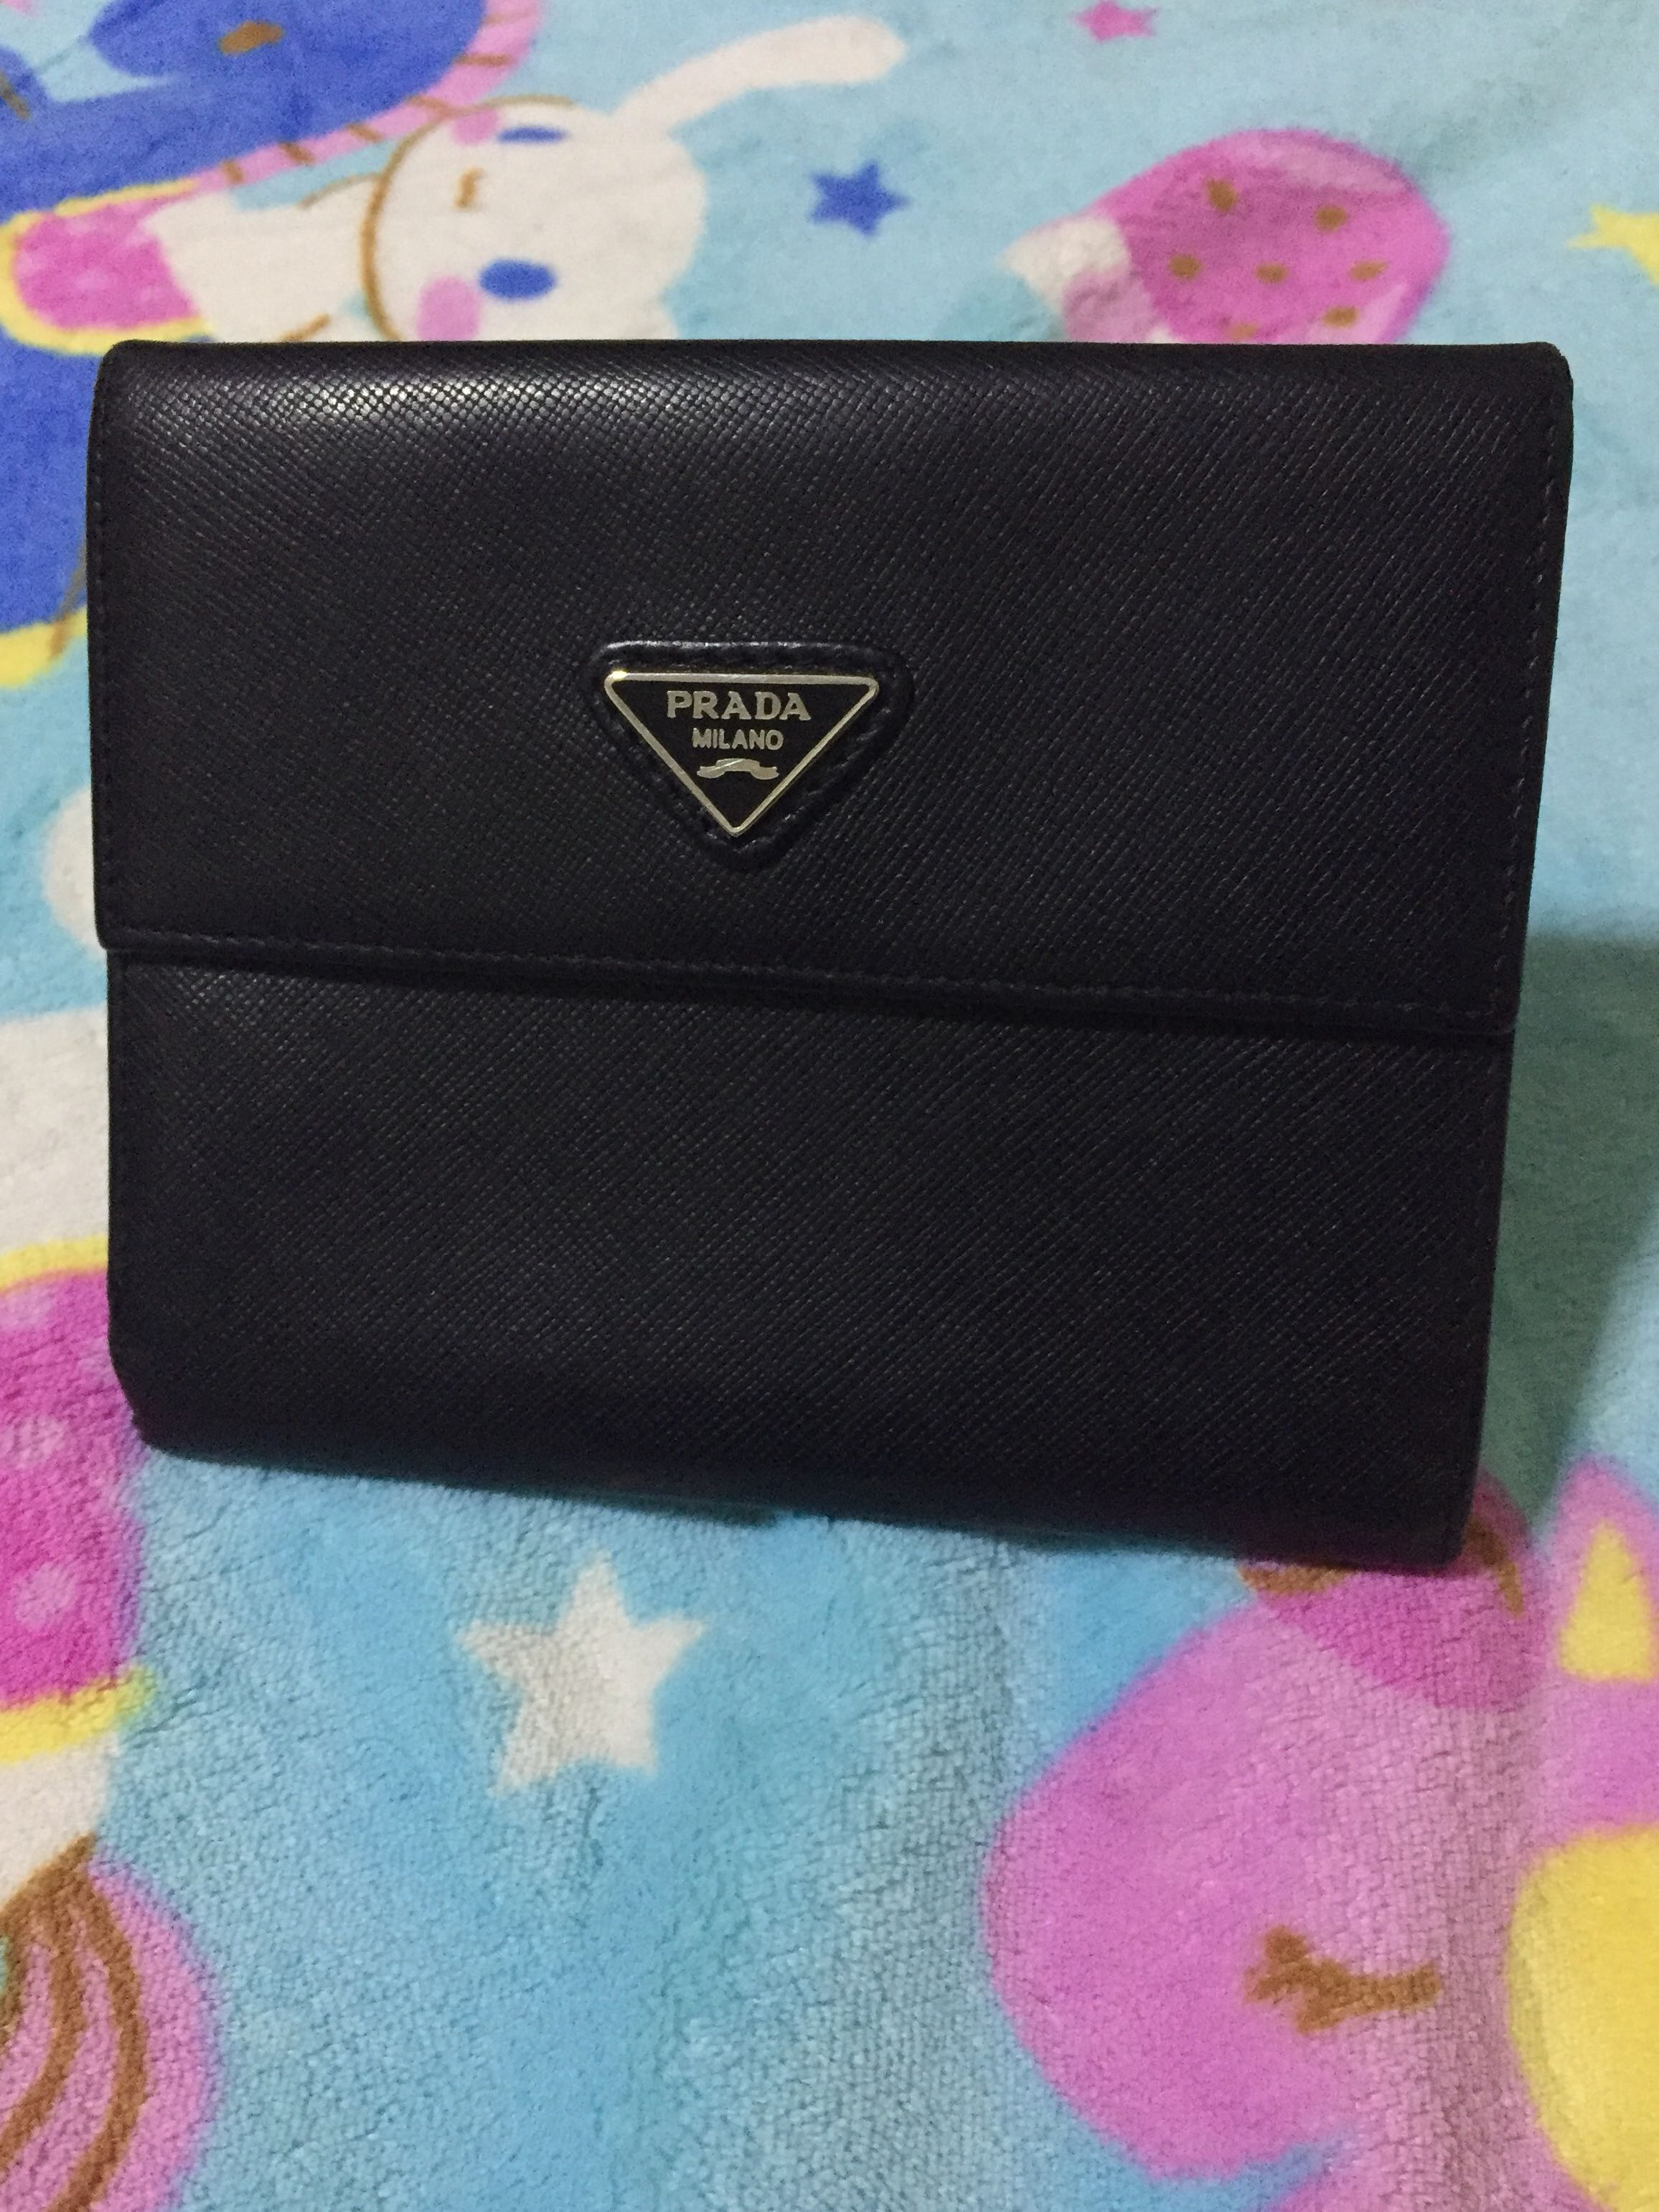 e02881479c5b SALE! Original Prada Saffiano Leather Short Wallet, Luxury, Bags ...